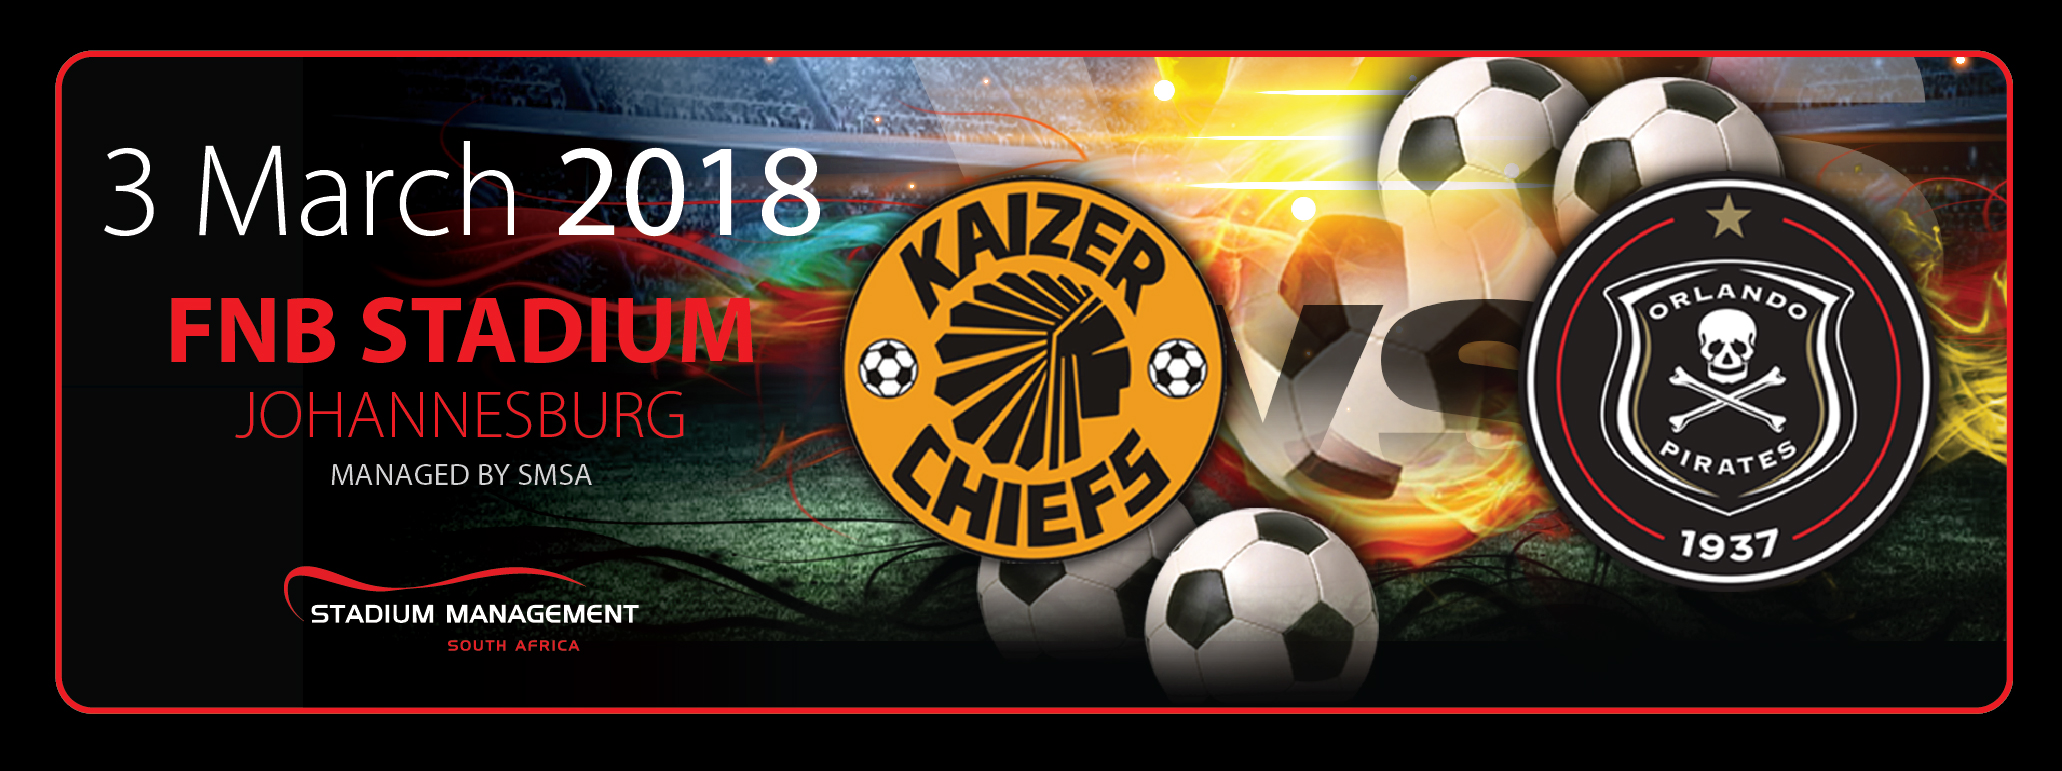 Pirates Vs Chiefs: Kaizer Chiefs Vs Orlando Pirates